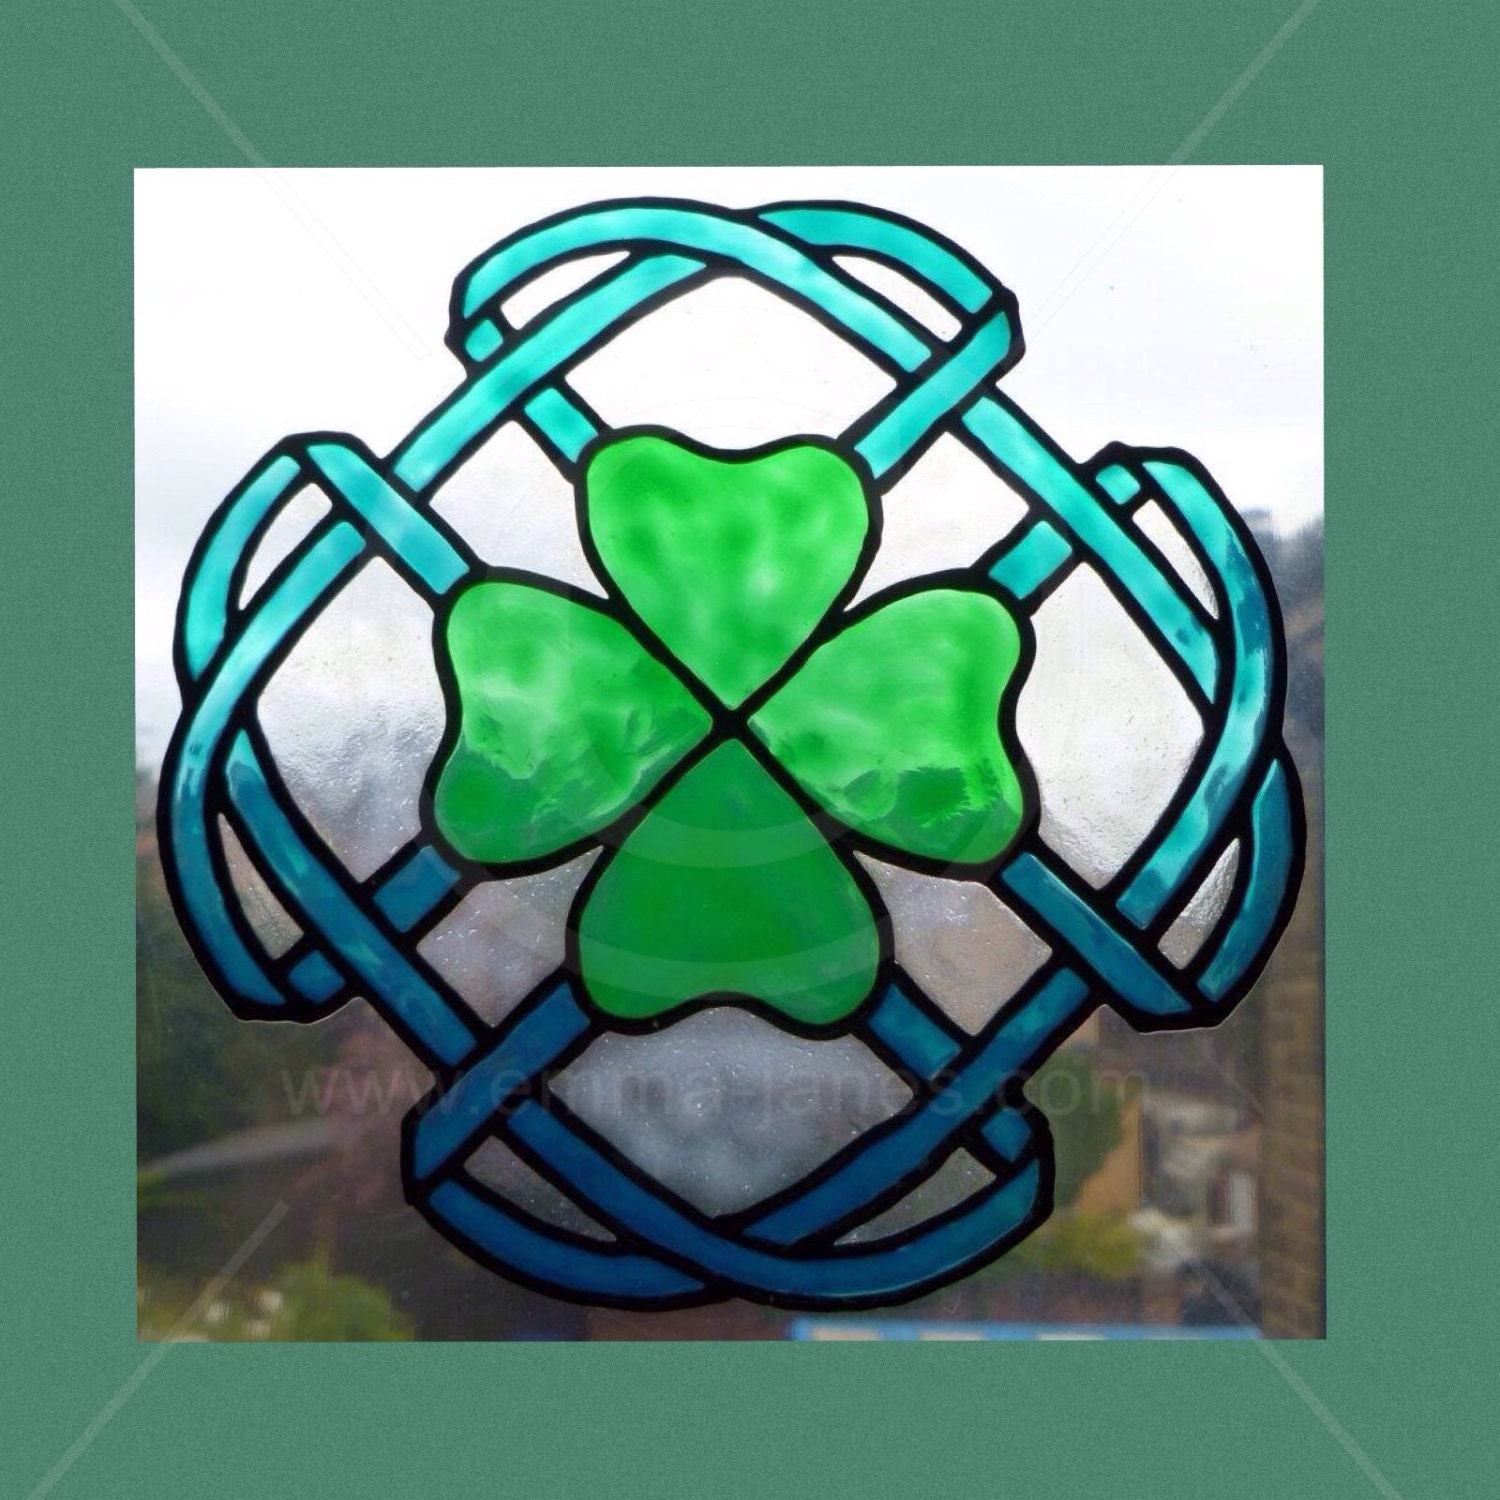 Handpainted celtic clover window cling for glass mirtor for Make your own stained glass window film